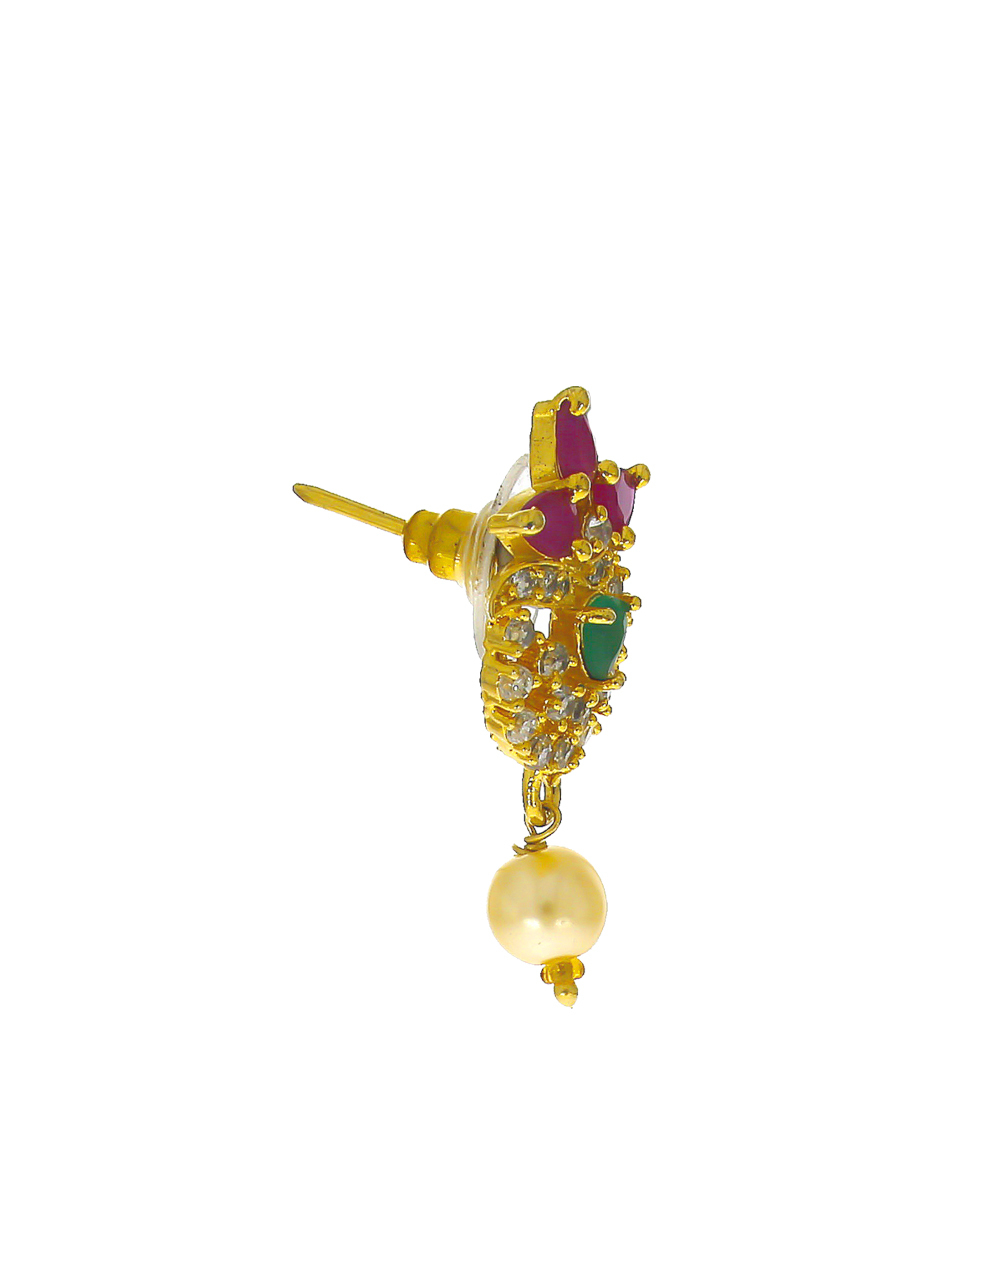 Multi Colour Gold Finish Styled With Pearls Beads Pendant